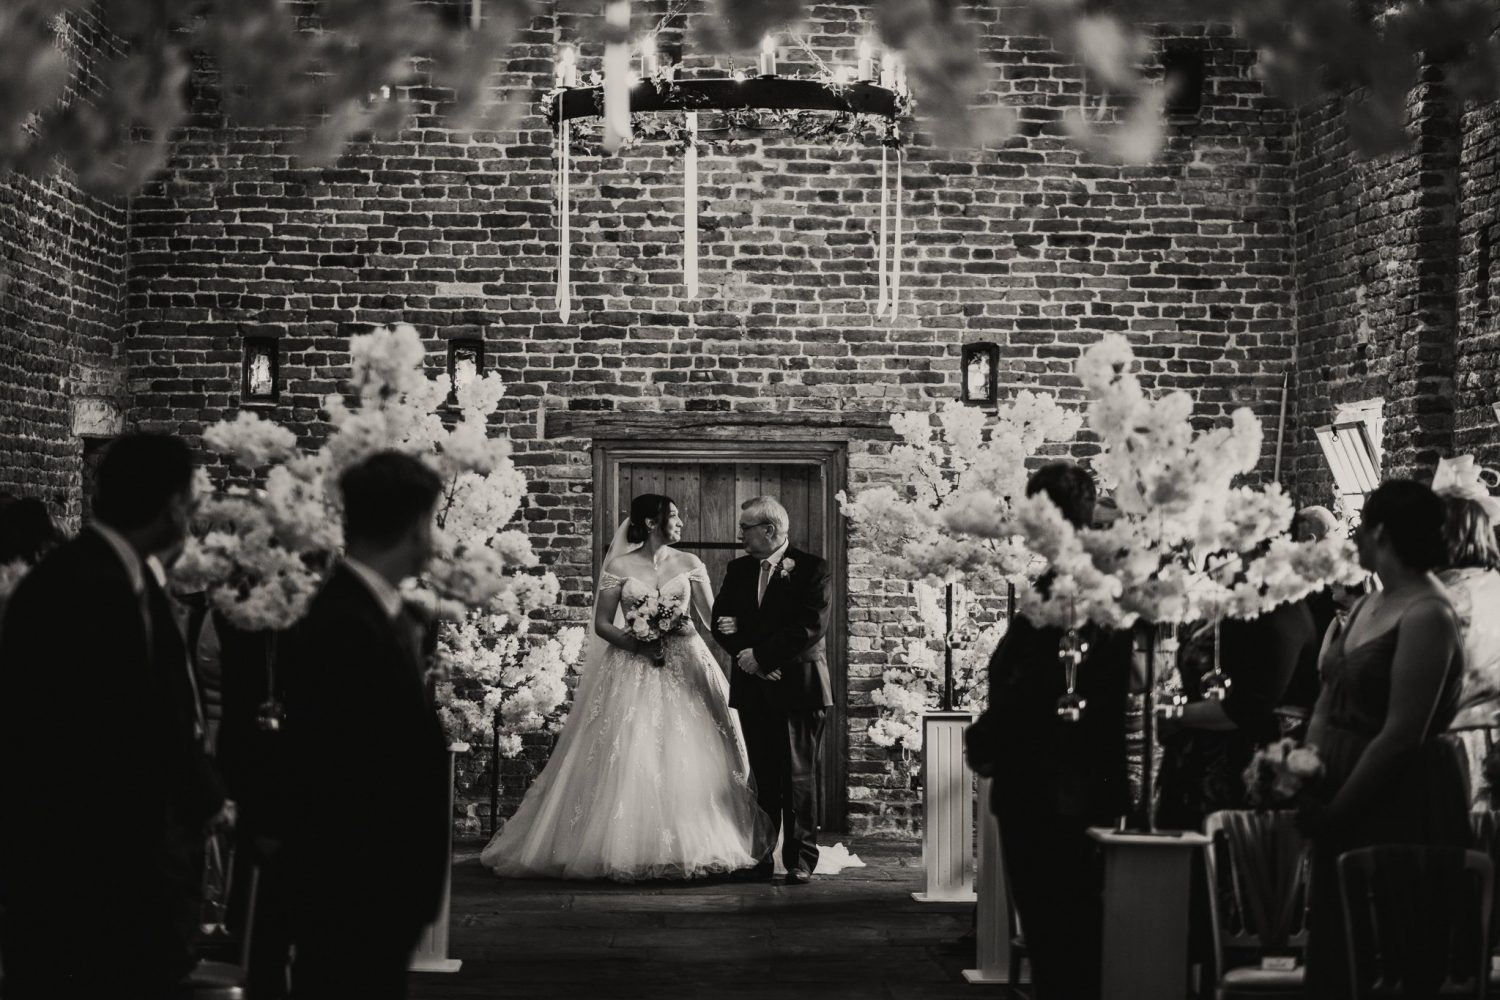 father walking bride down the aisle in black and white